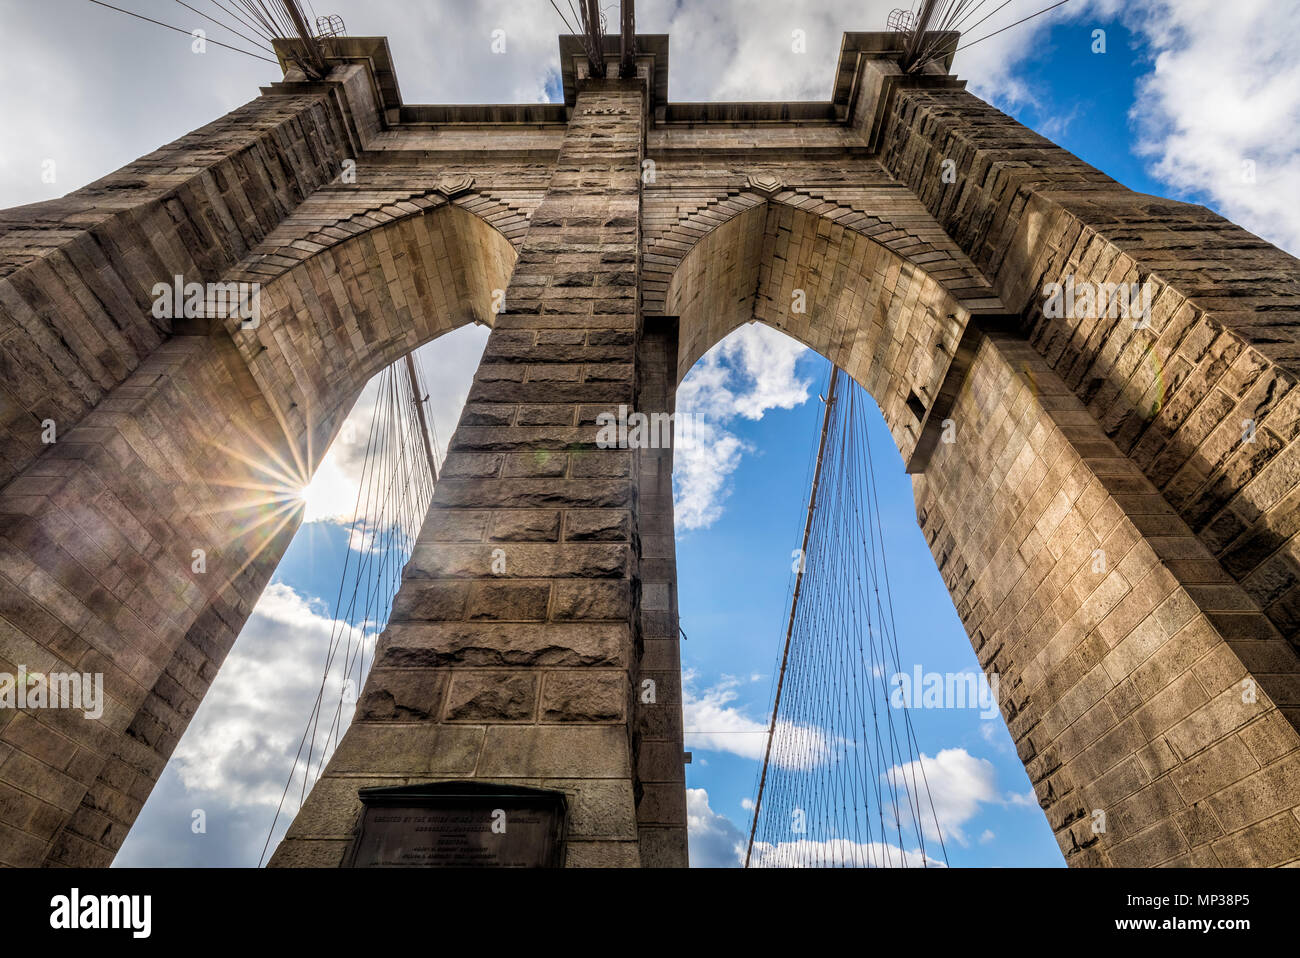 Die massiven Bögen der Brooklyn Bridge In New York City, USA. Stockbild